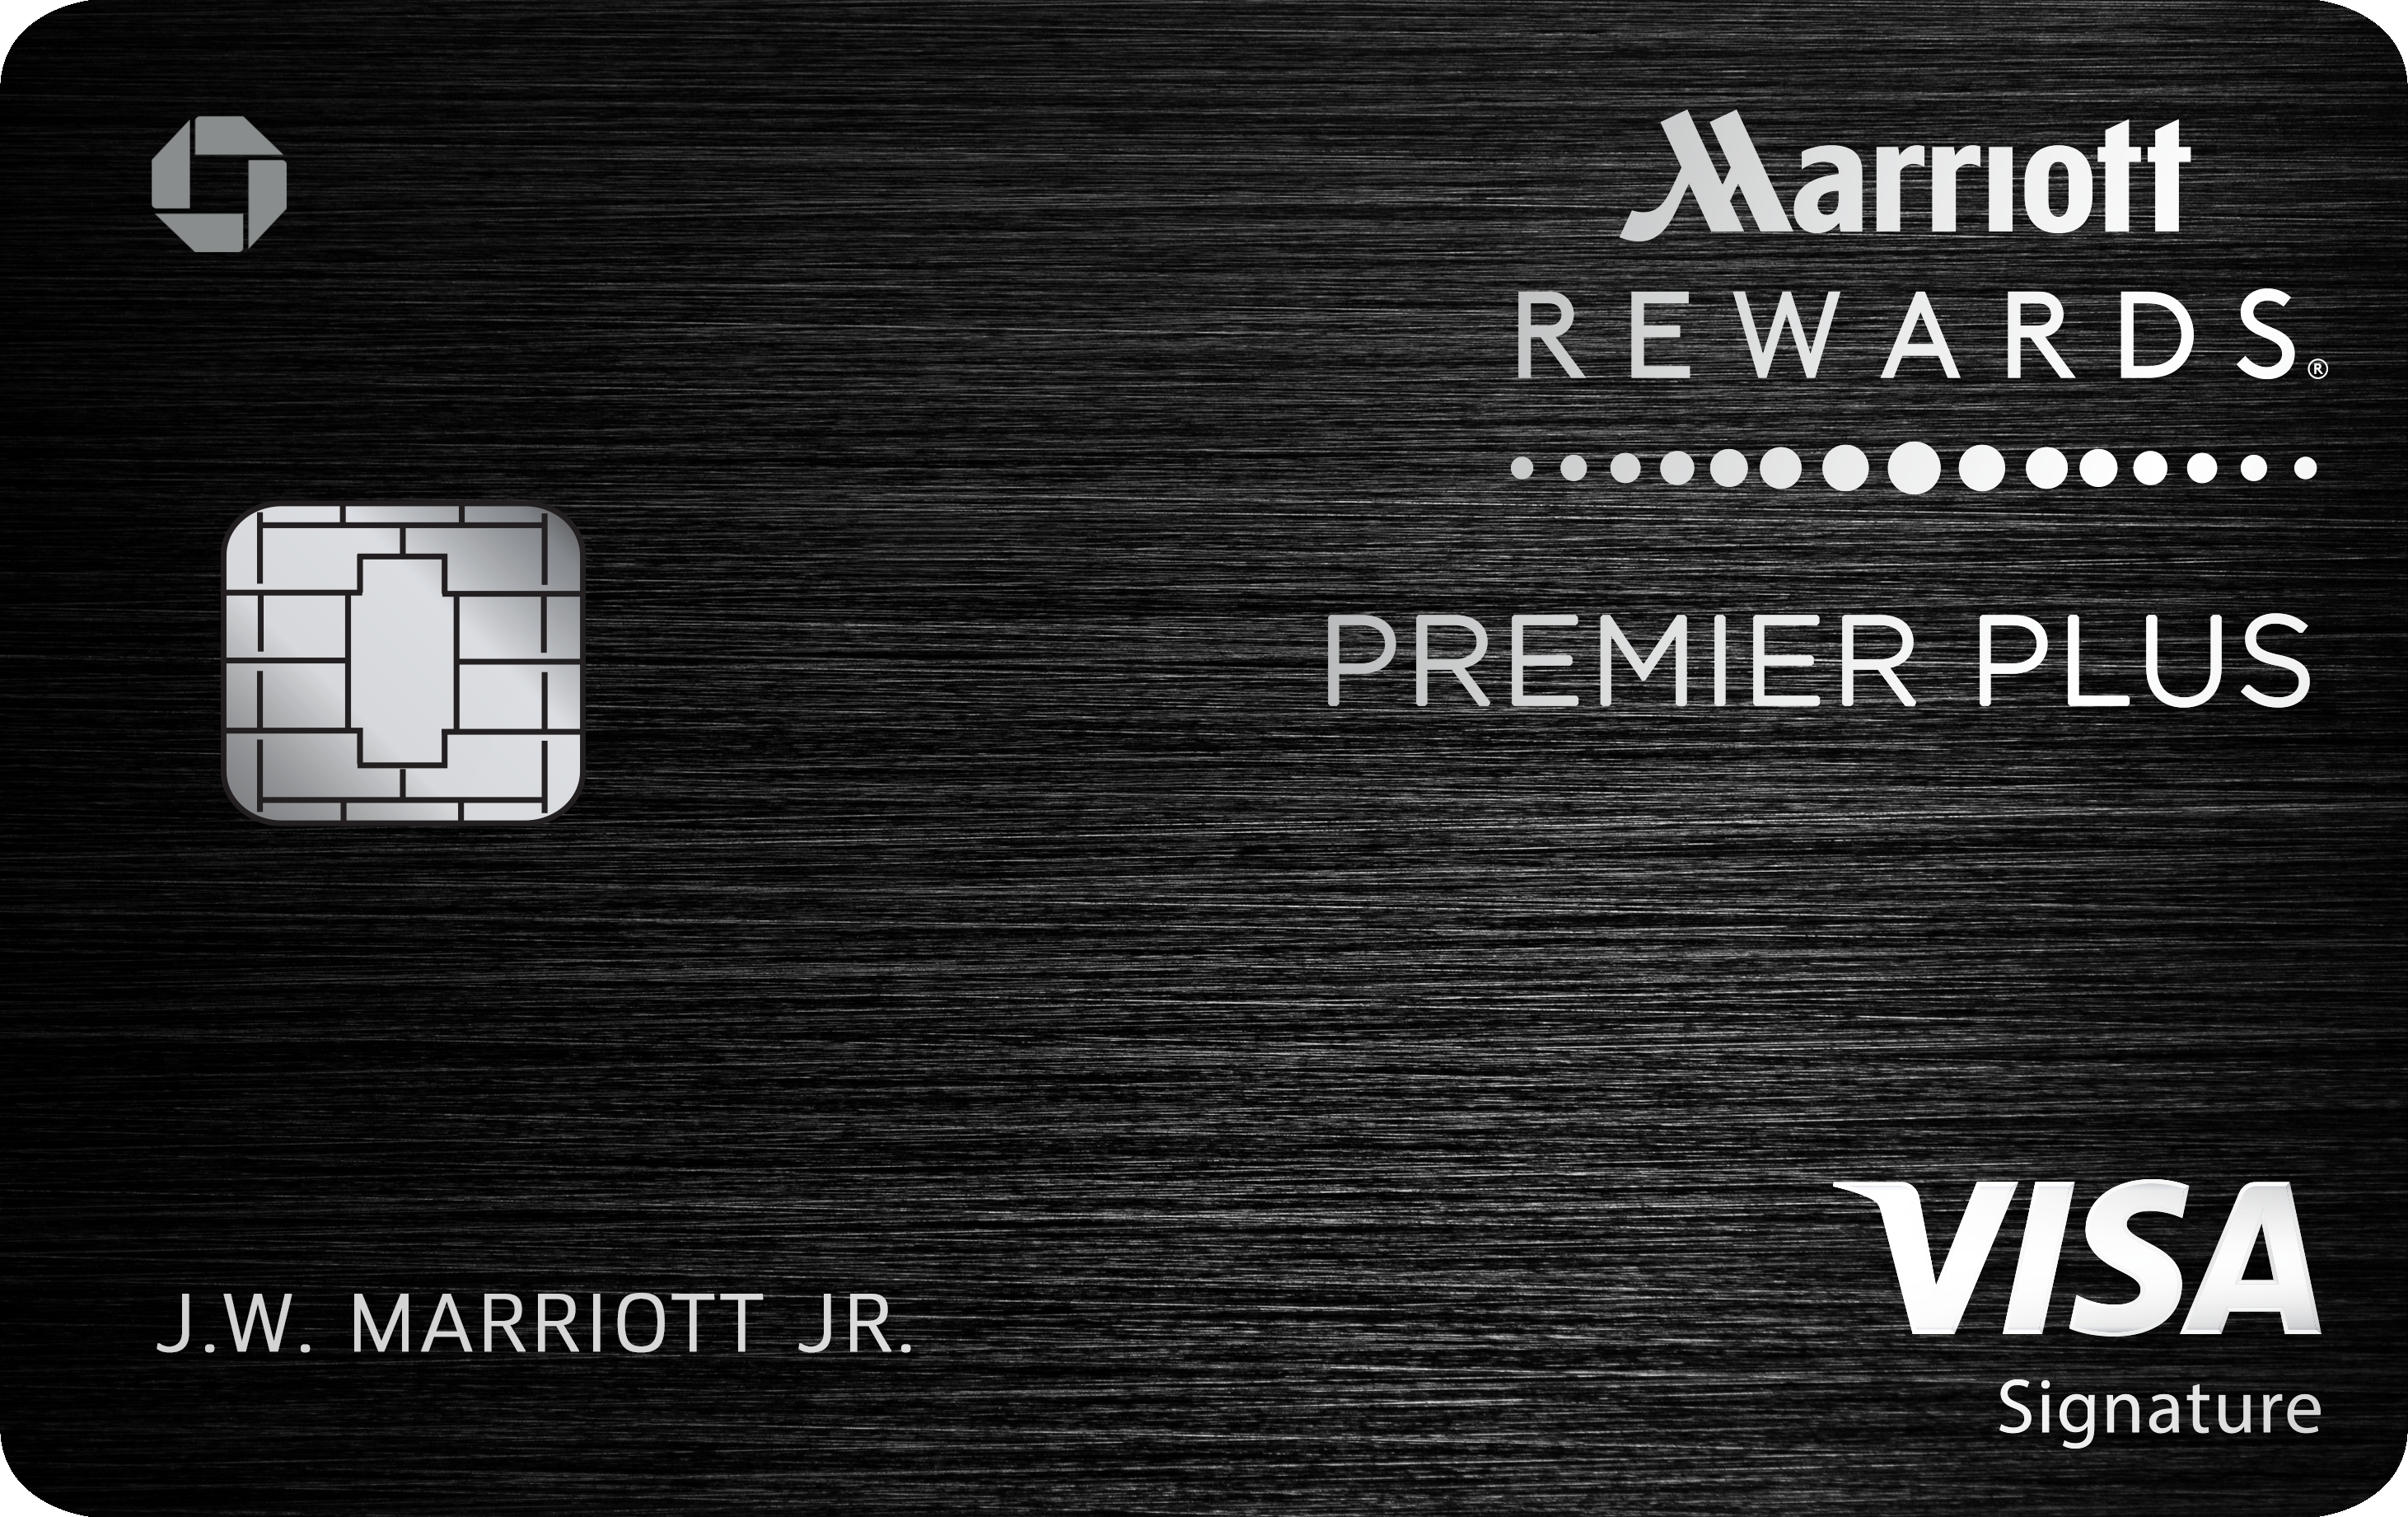 Chase and marriott announce the marriott rewards premier plus credit chase and marriott announce the marriott rewards premier plus credit card a new card with more value more access more perks and a 100000 point limited colourmoves